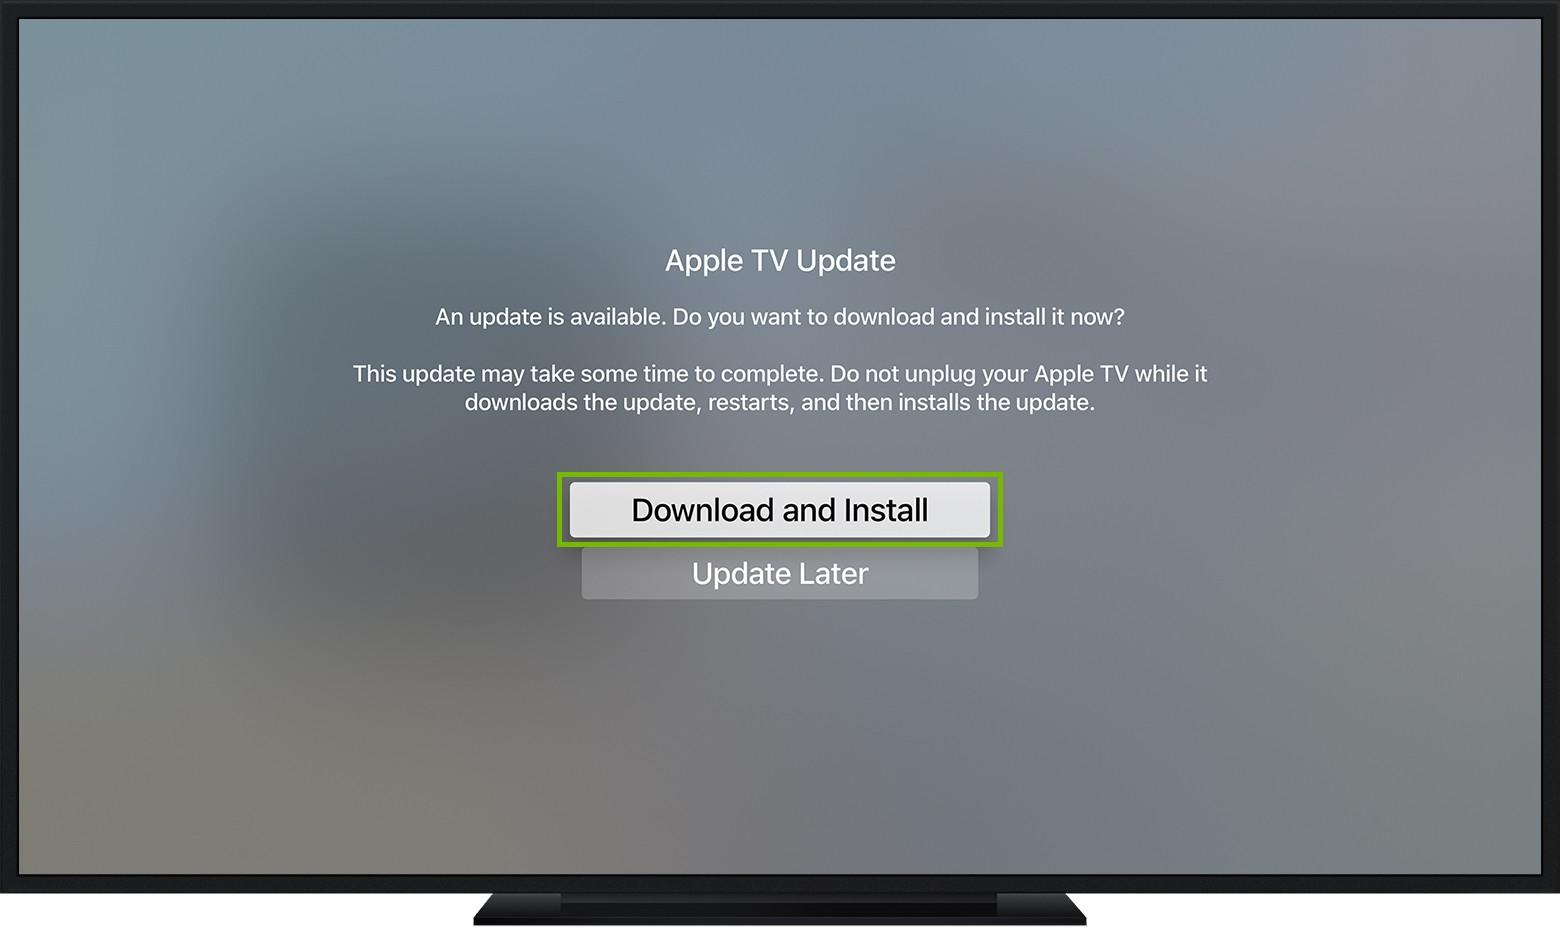 Apple TV Update Software screen highlighting the Download and Install button.